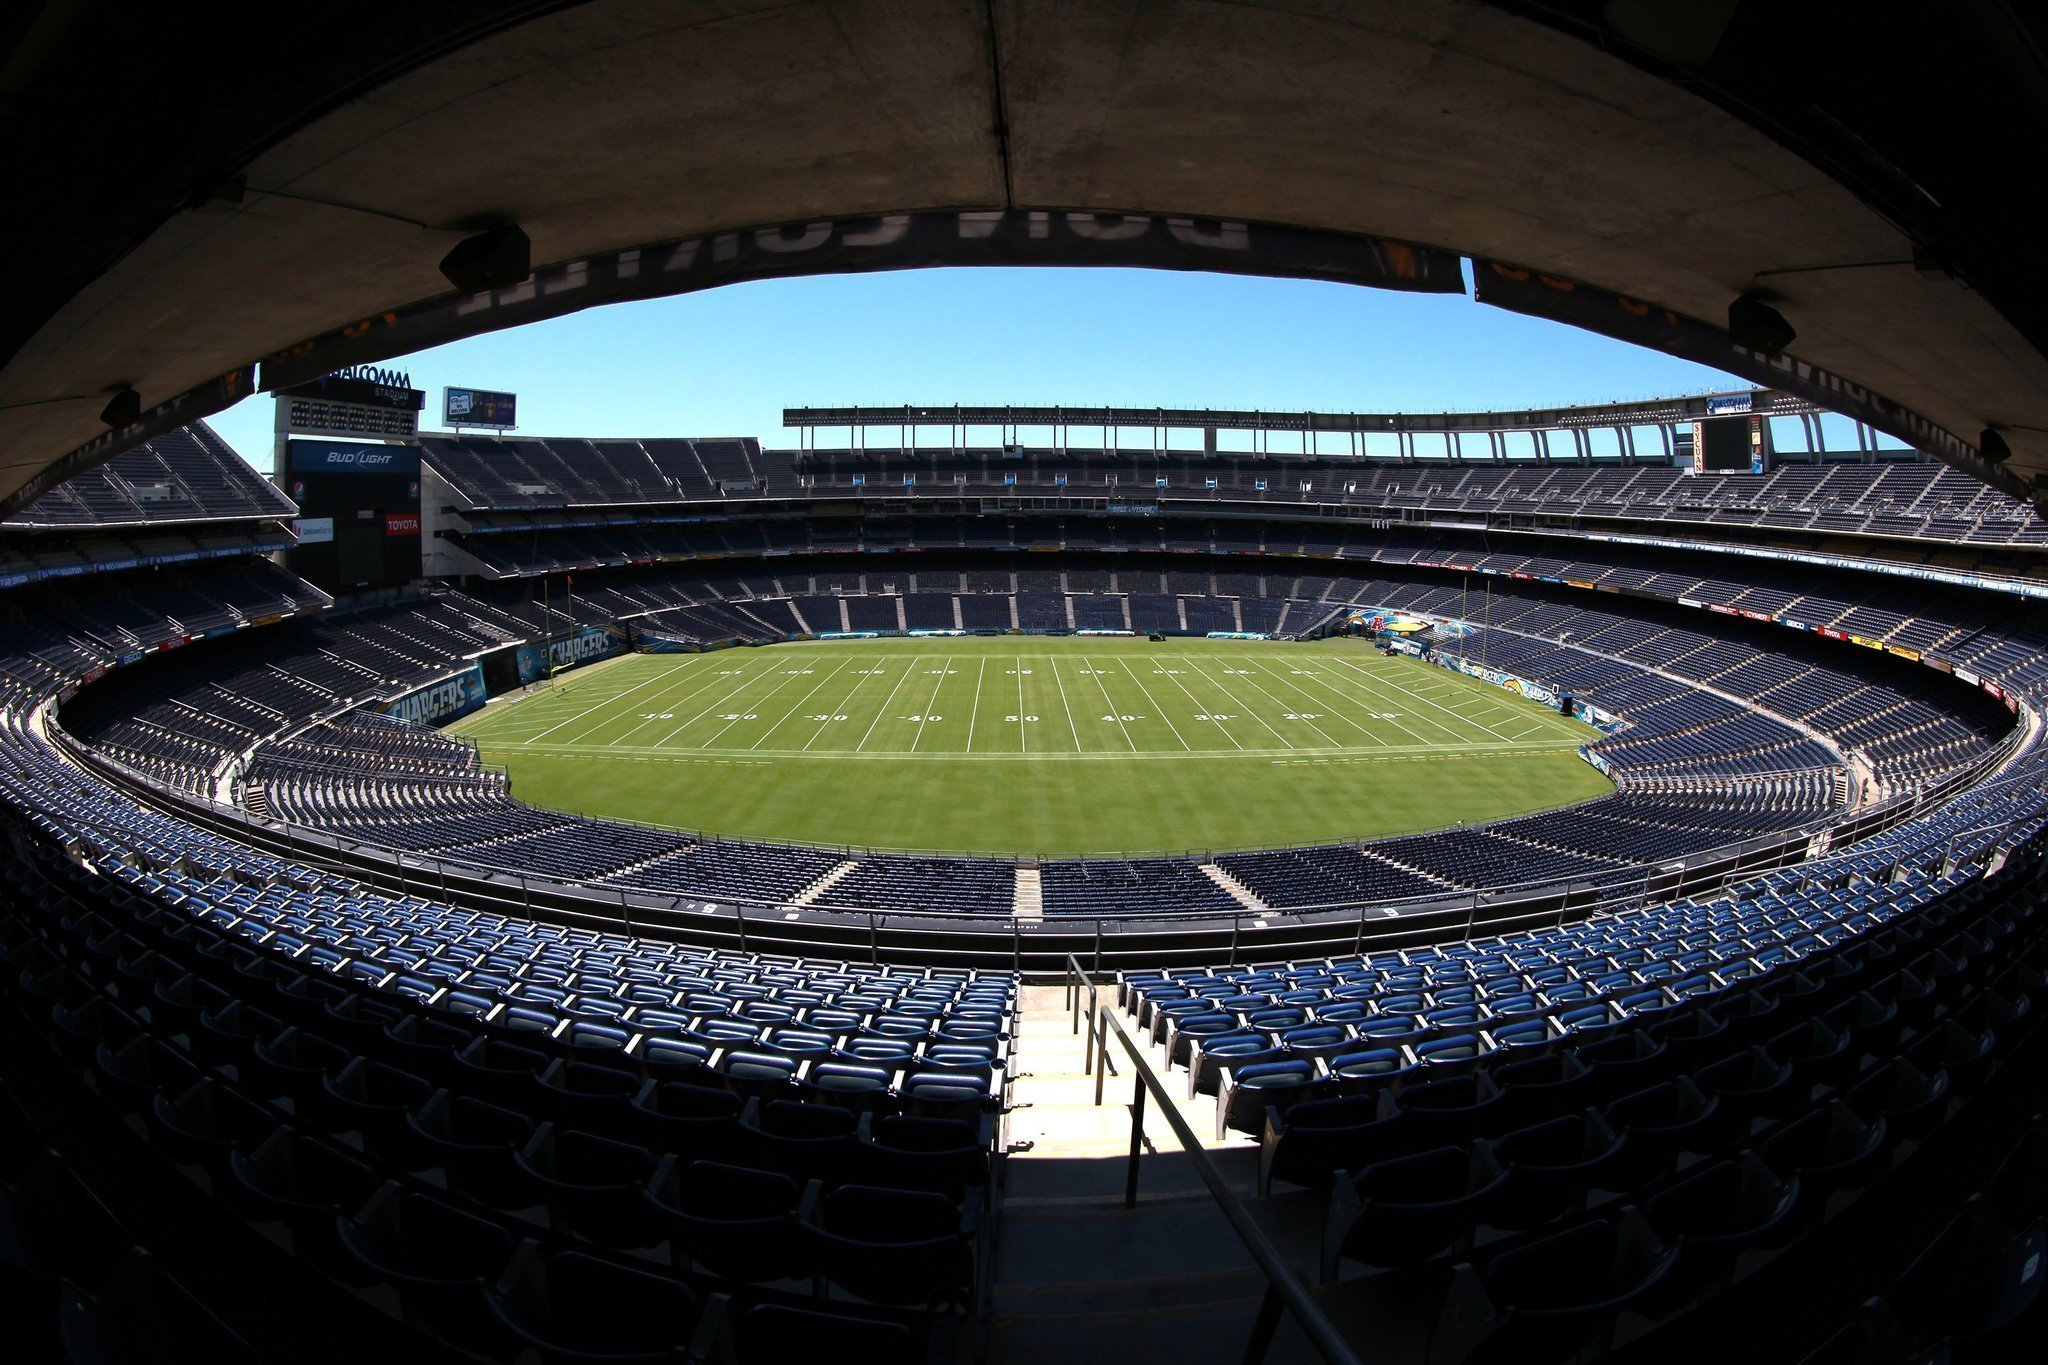 Nfl Spurred Sd Stl La In Stadium Game The San Diego